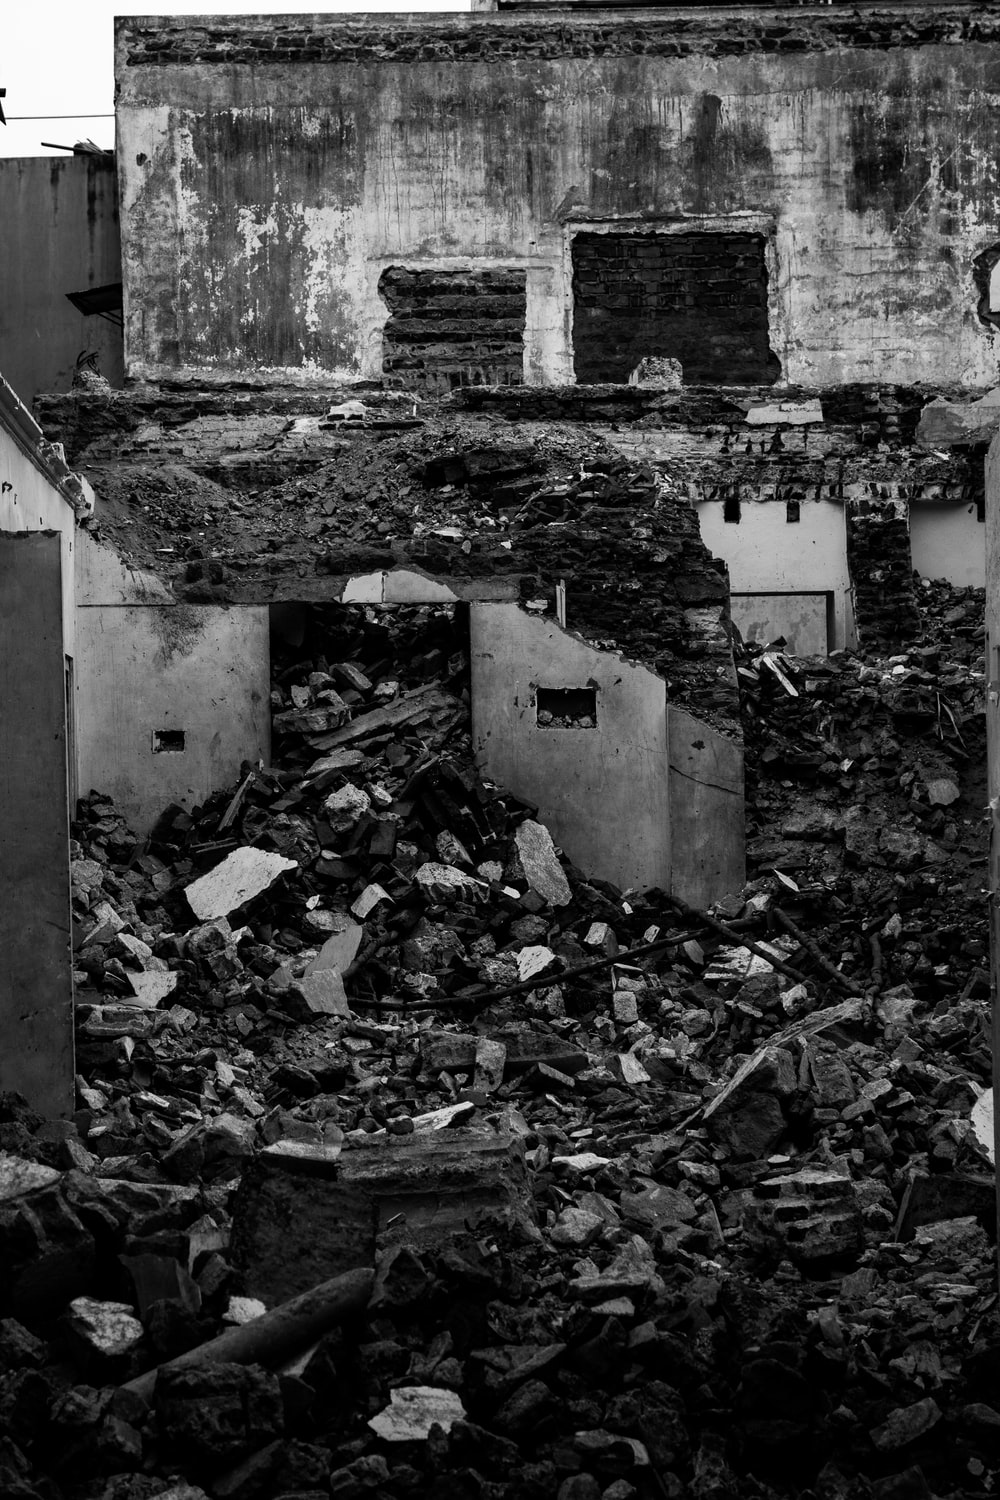 grayscale photo of abandon house